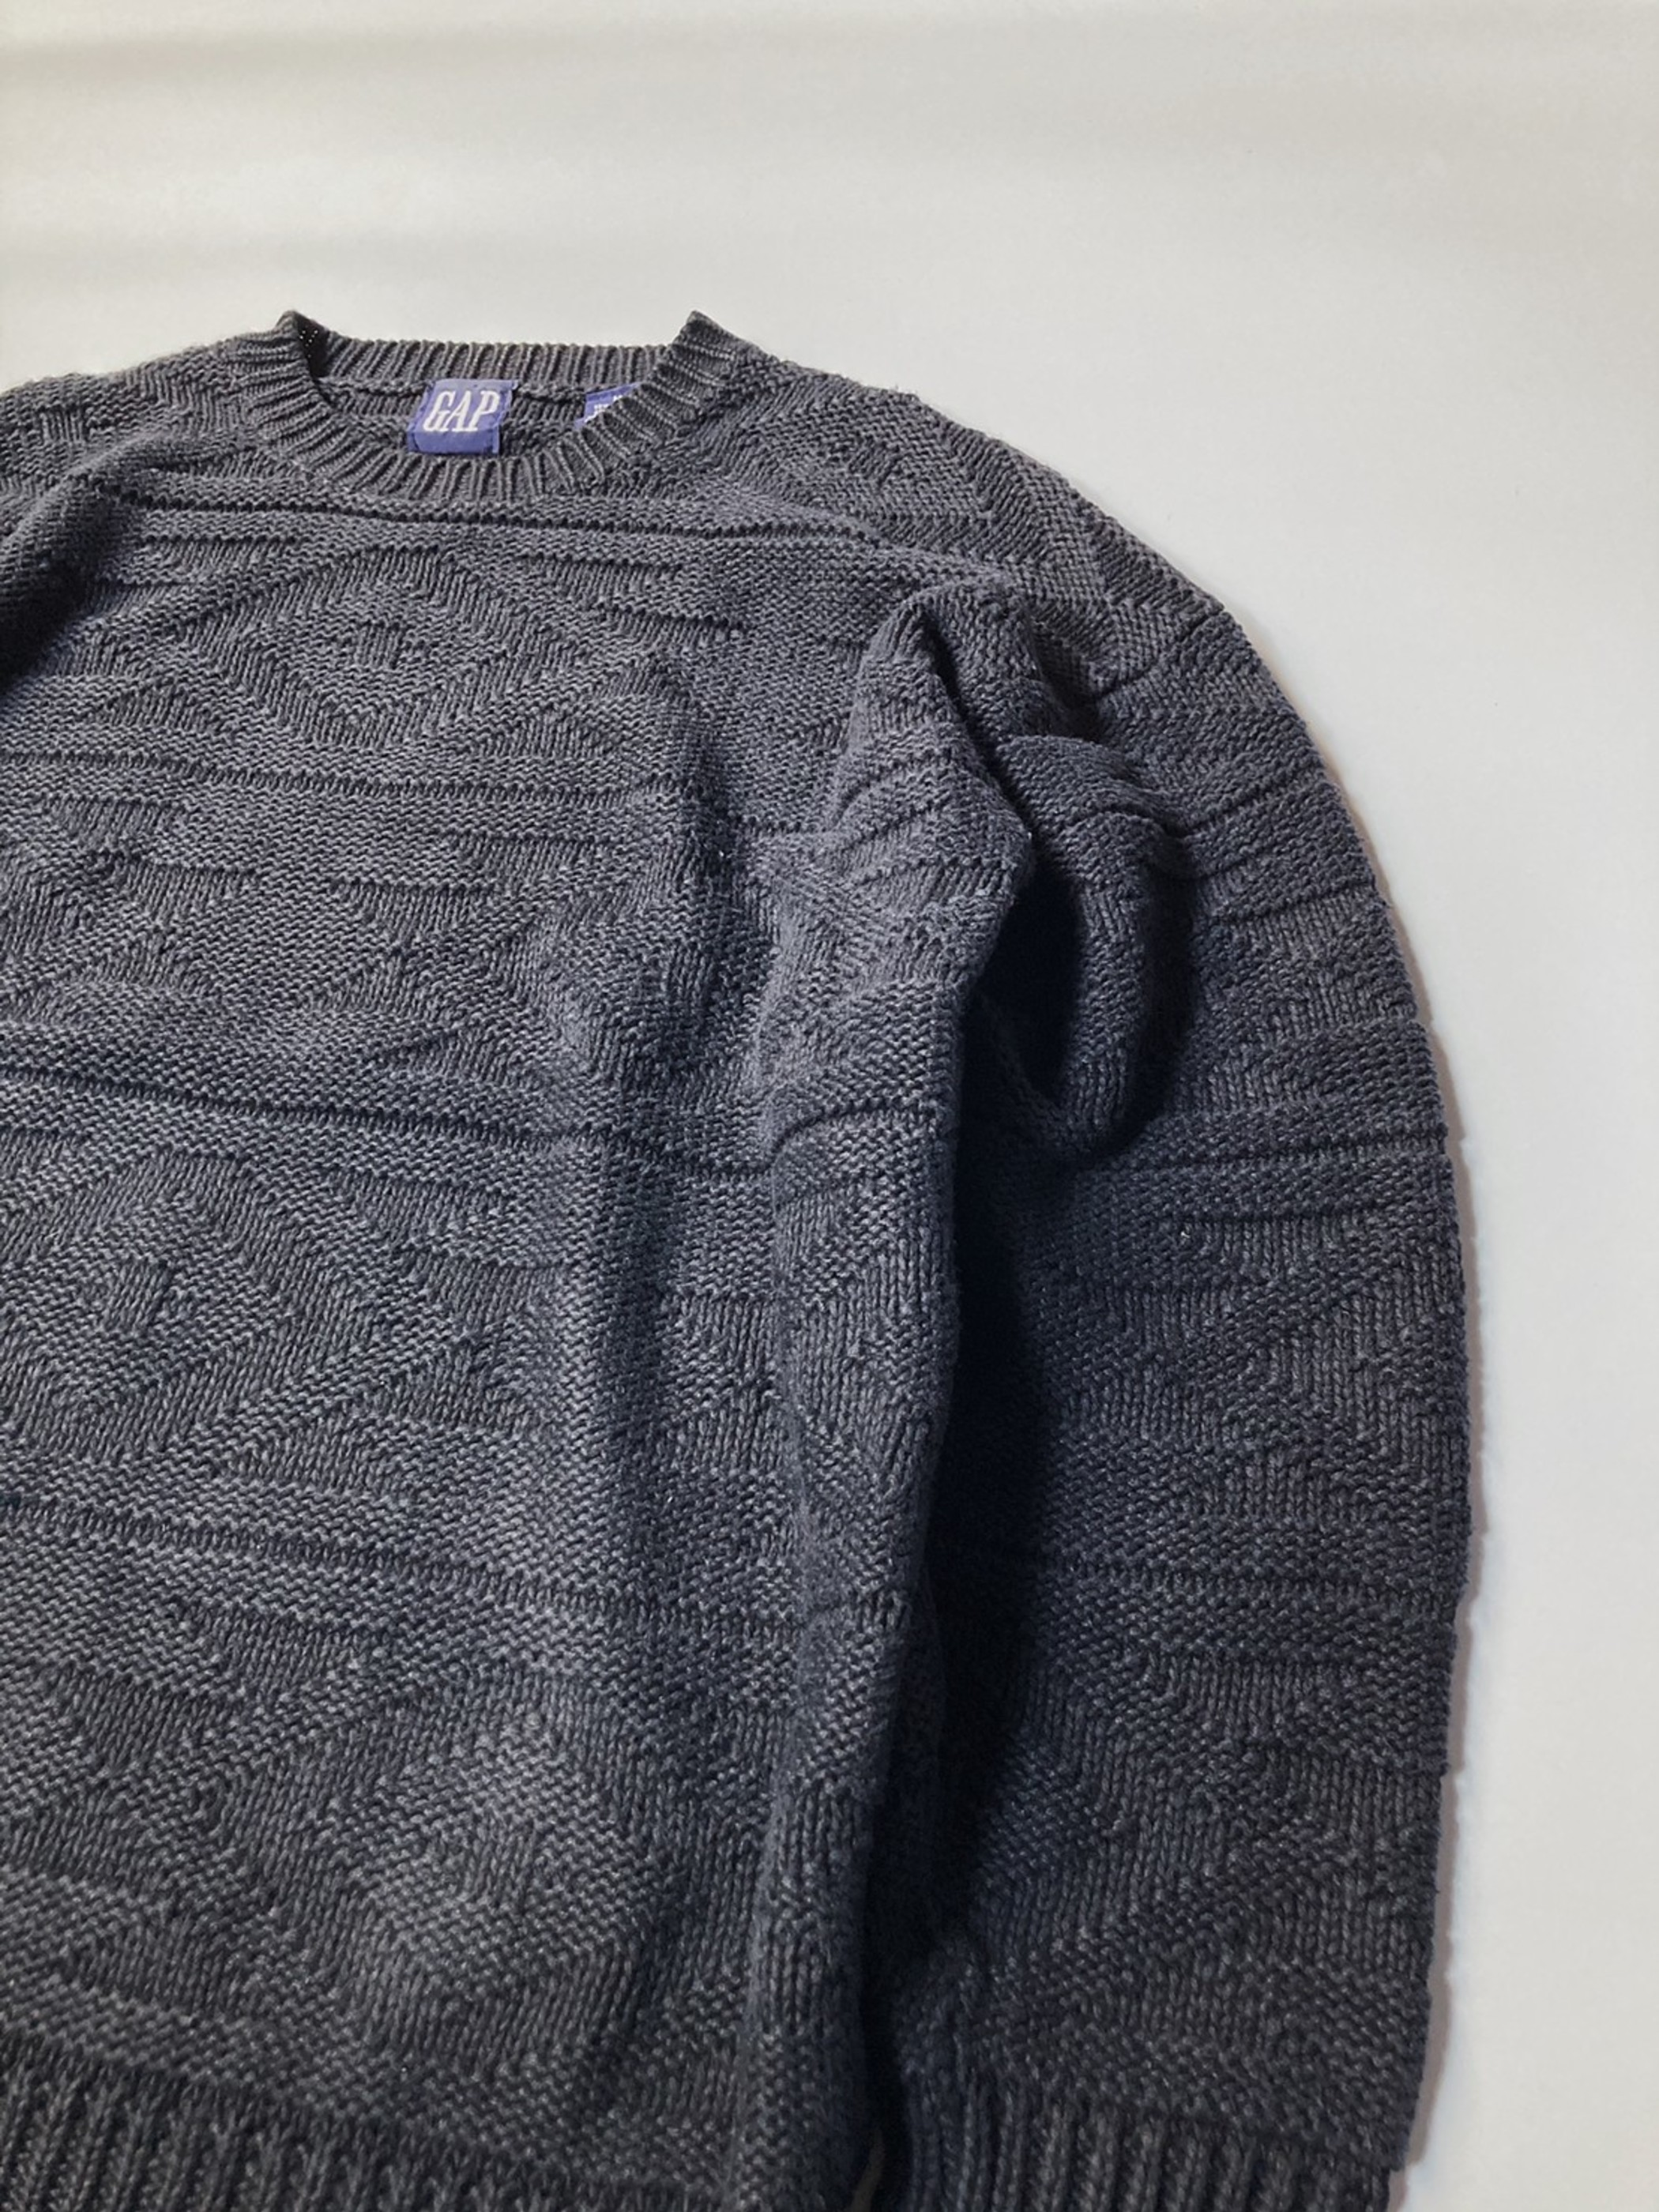 GAP ramie cotton knit 90s